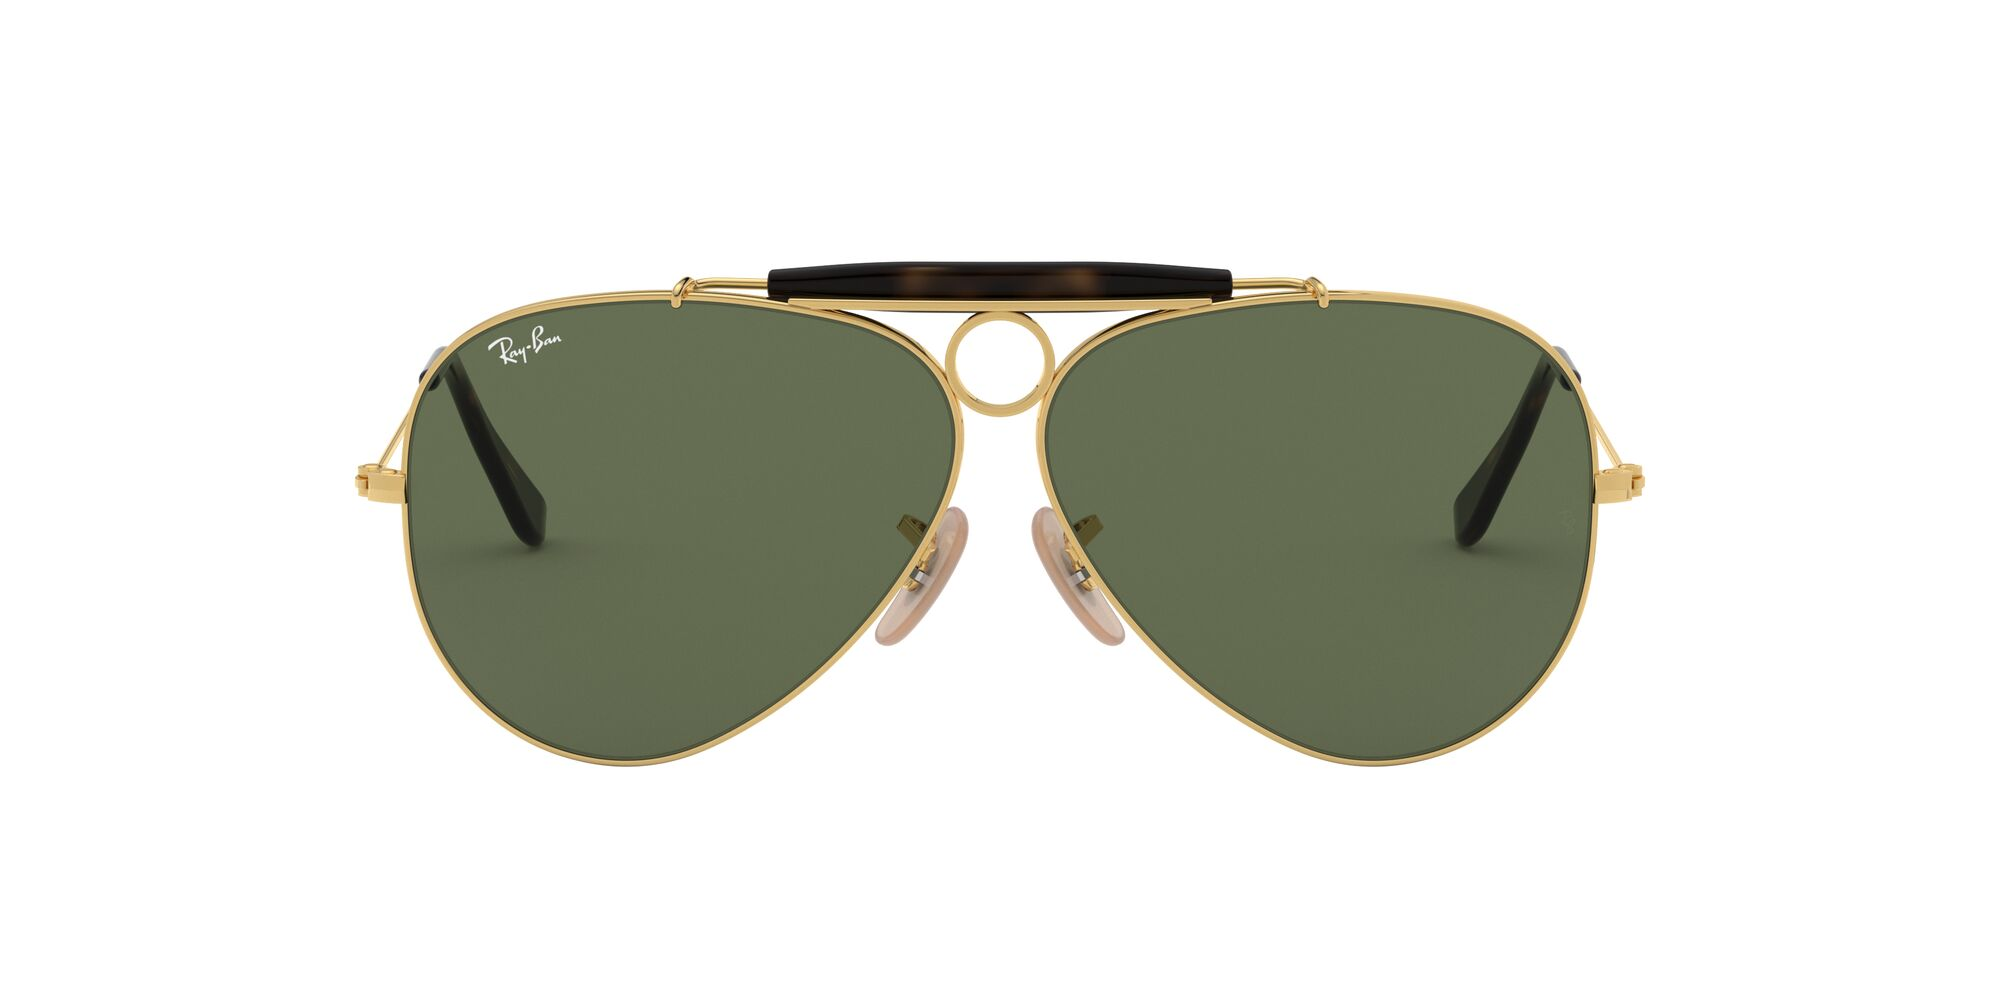 Front Ray-Ban Ray-Ban 0RB3138 181 62/9 Goud, Groen/Groen